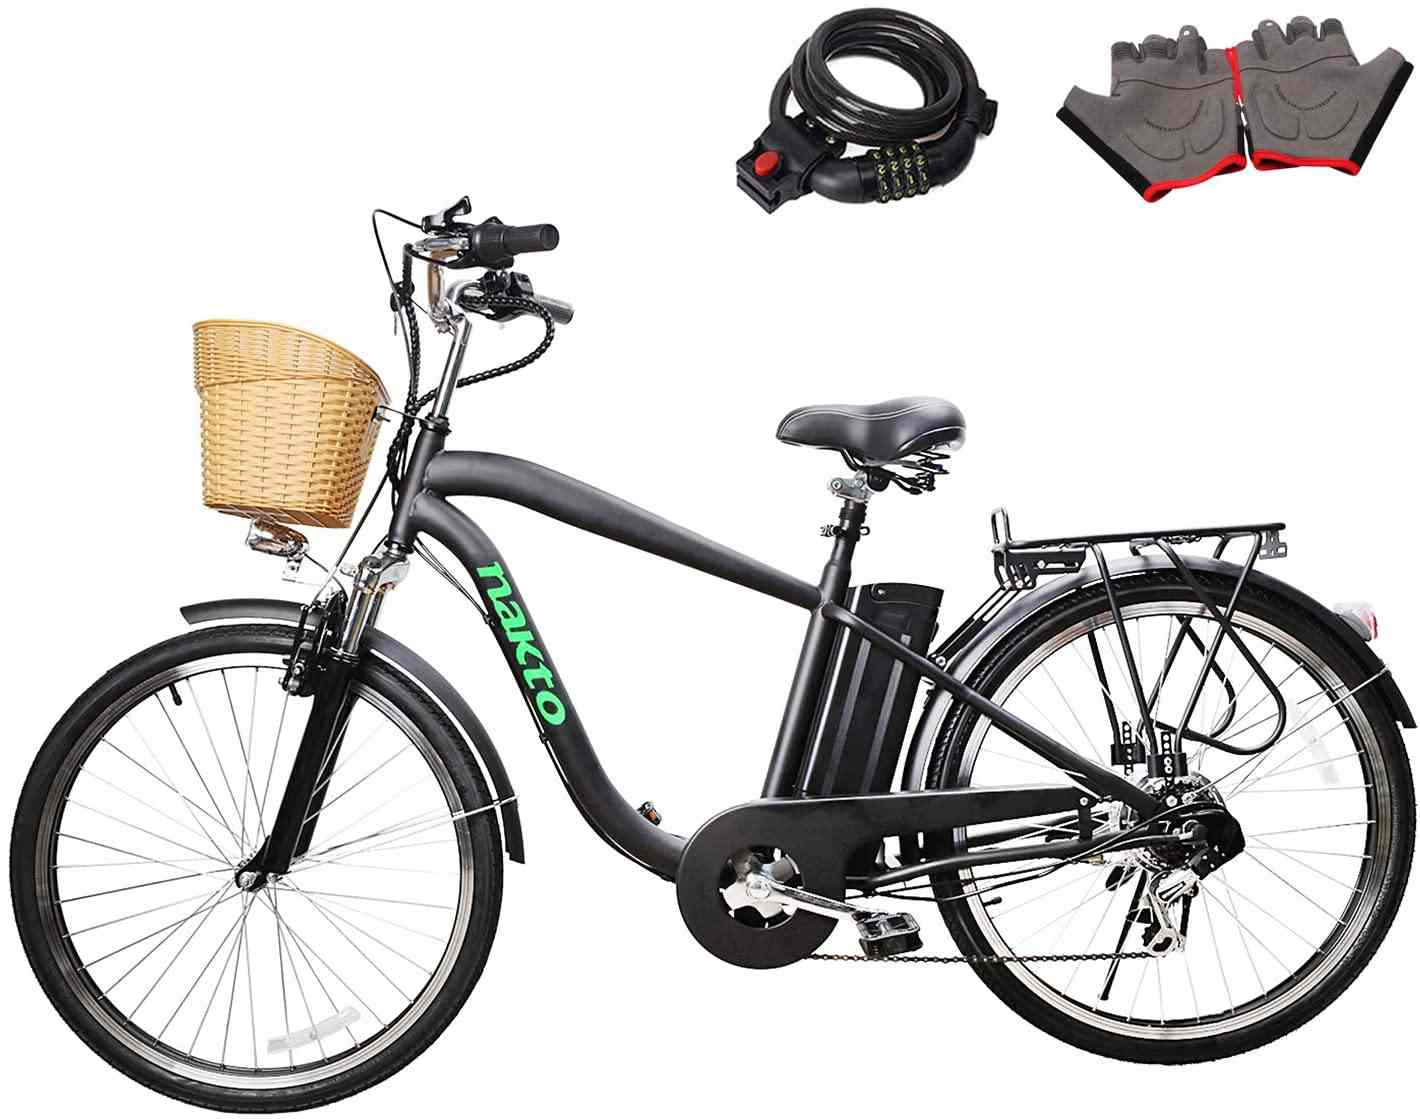 Nakto 250W Shimano 6-Speed Gear Electric Bicycle